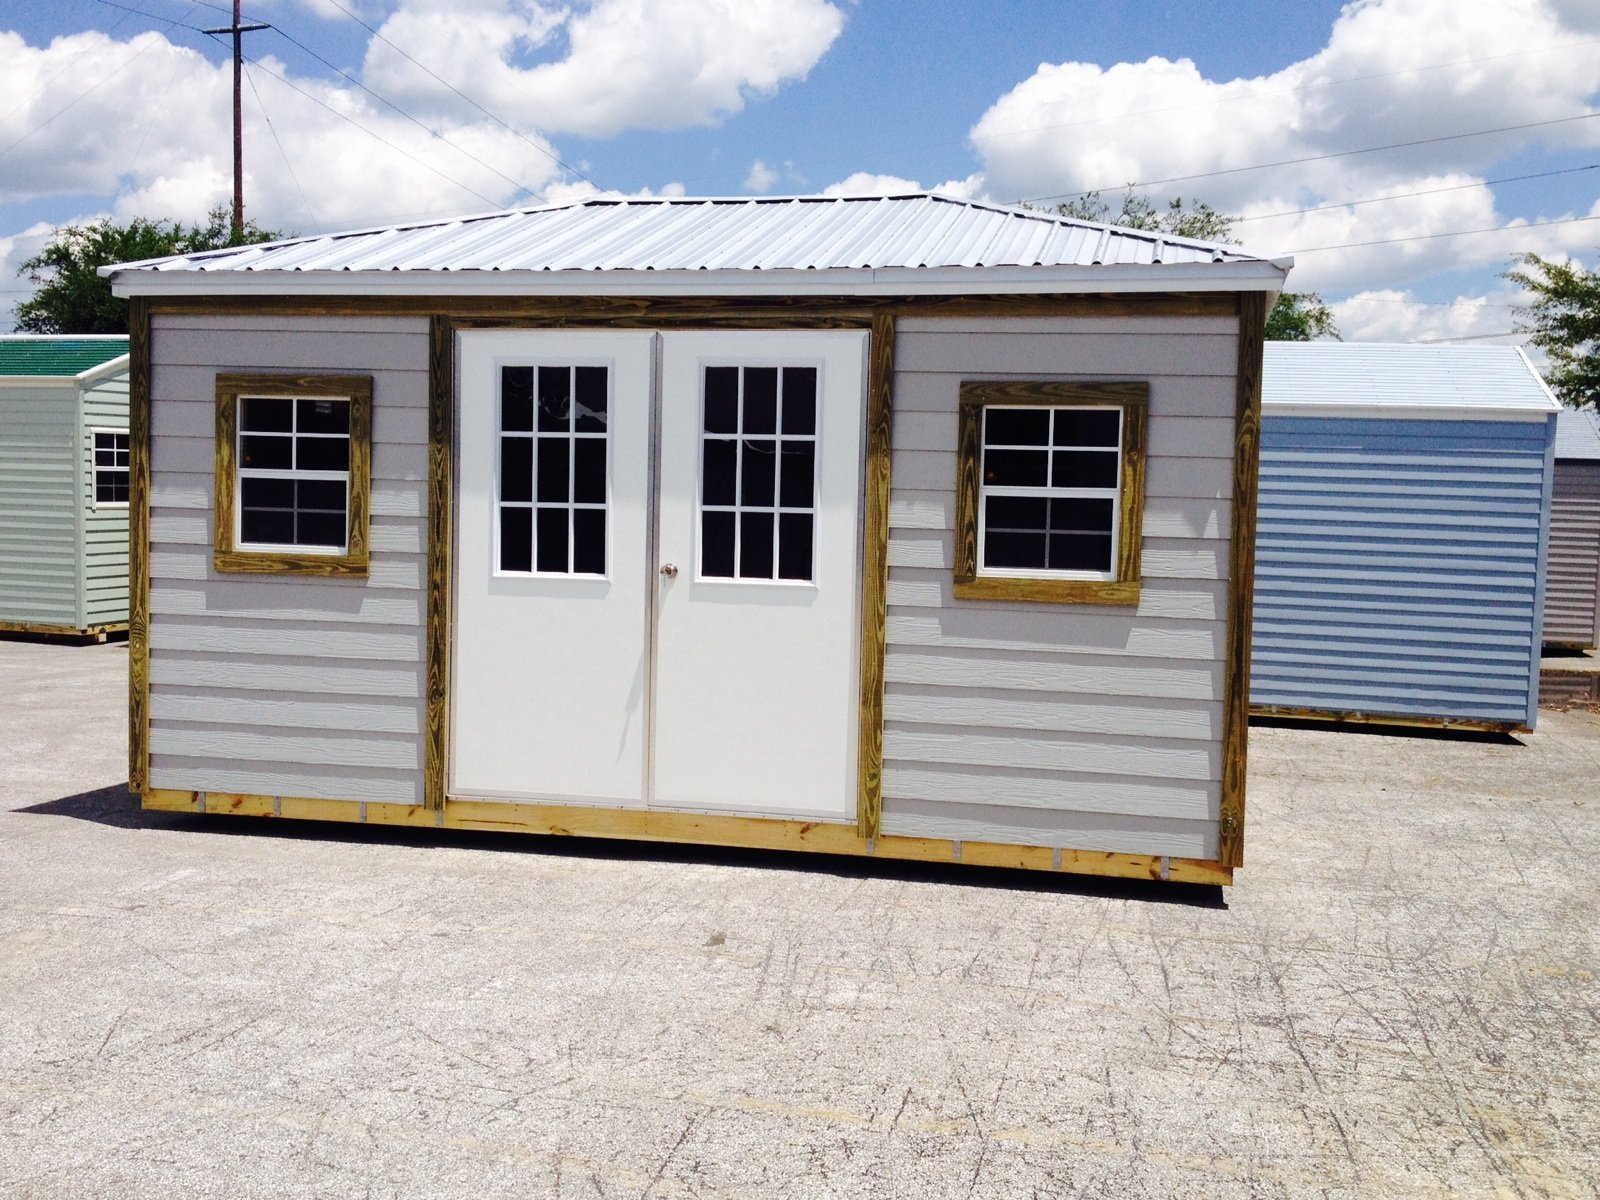 Cabana sheds utility sheds florida storage sheds for Sheds storage buildings